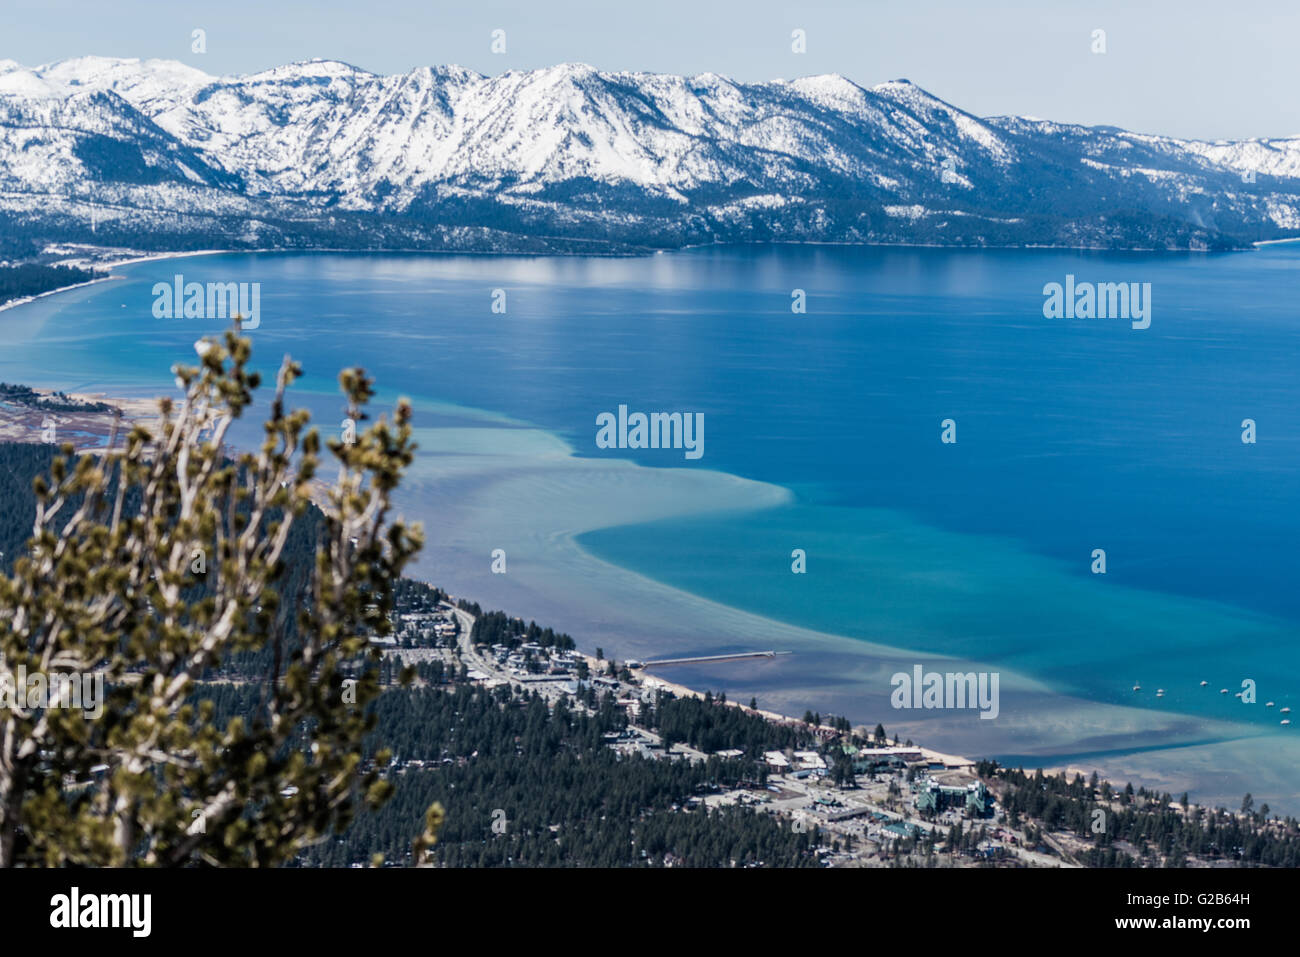 Heavenly ski resort at Lake Tahoe - Stock Image